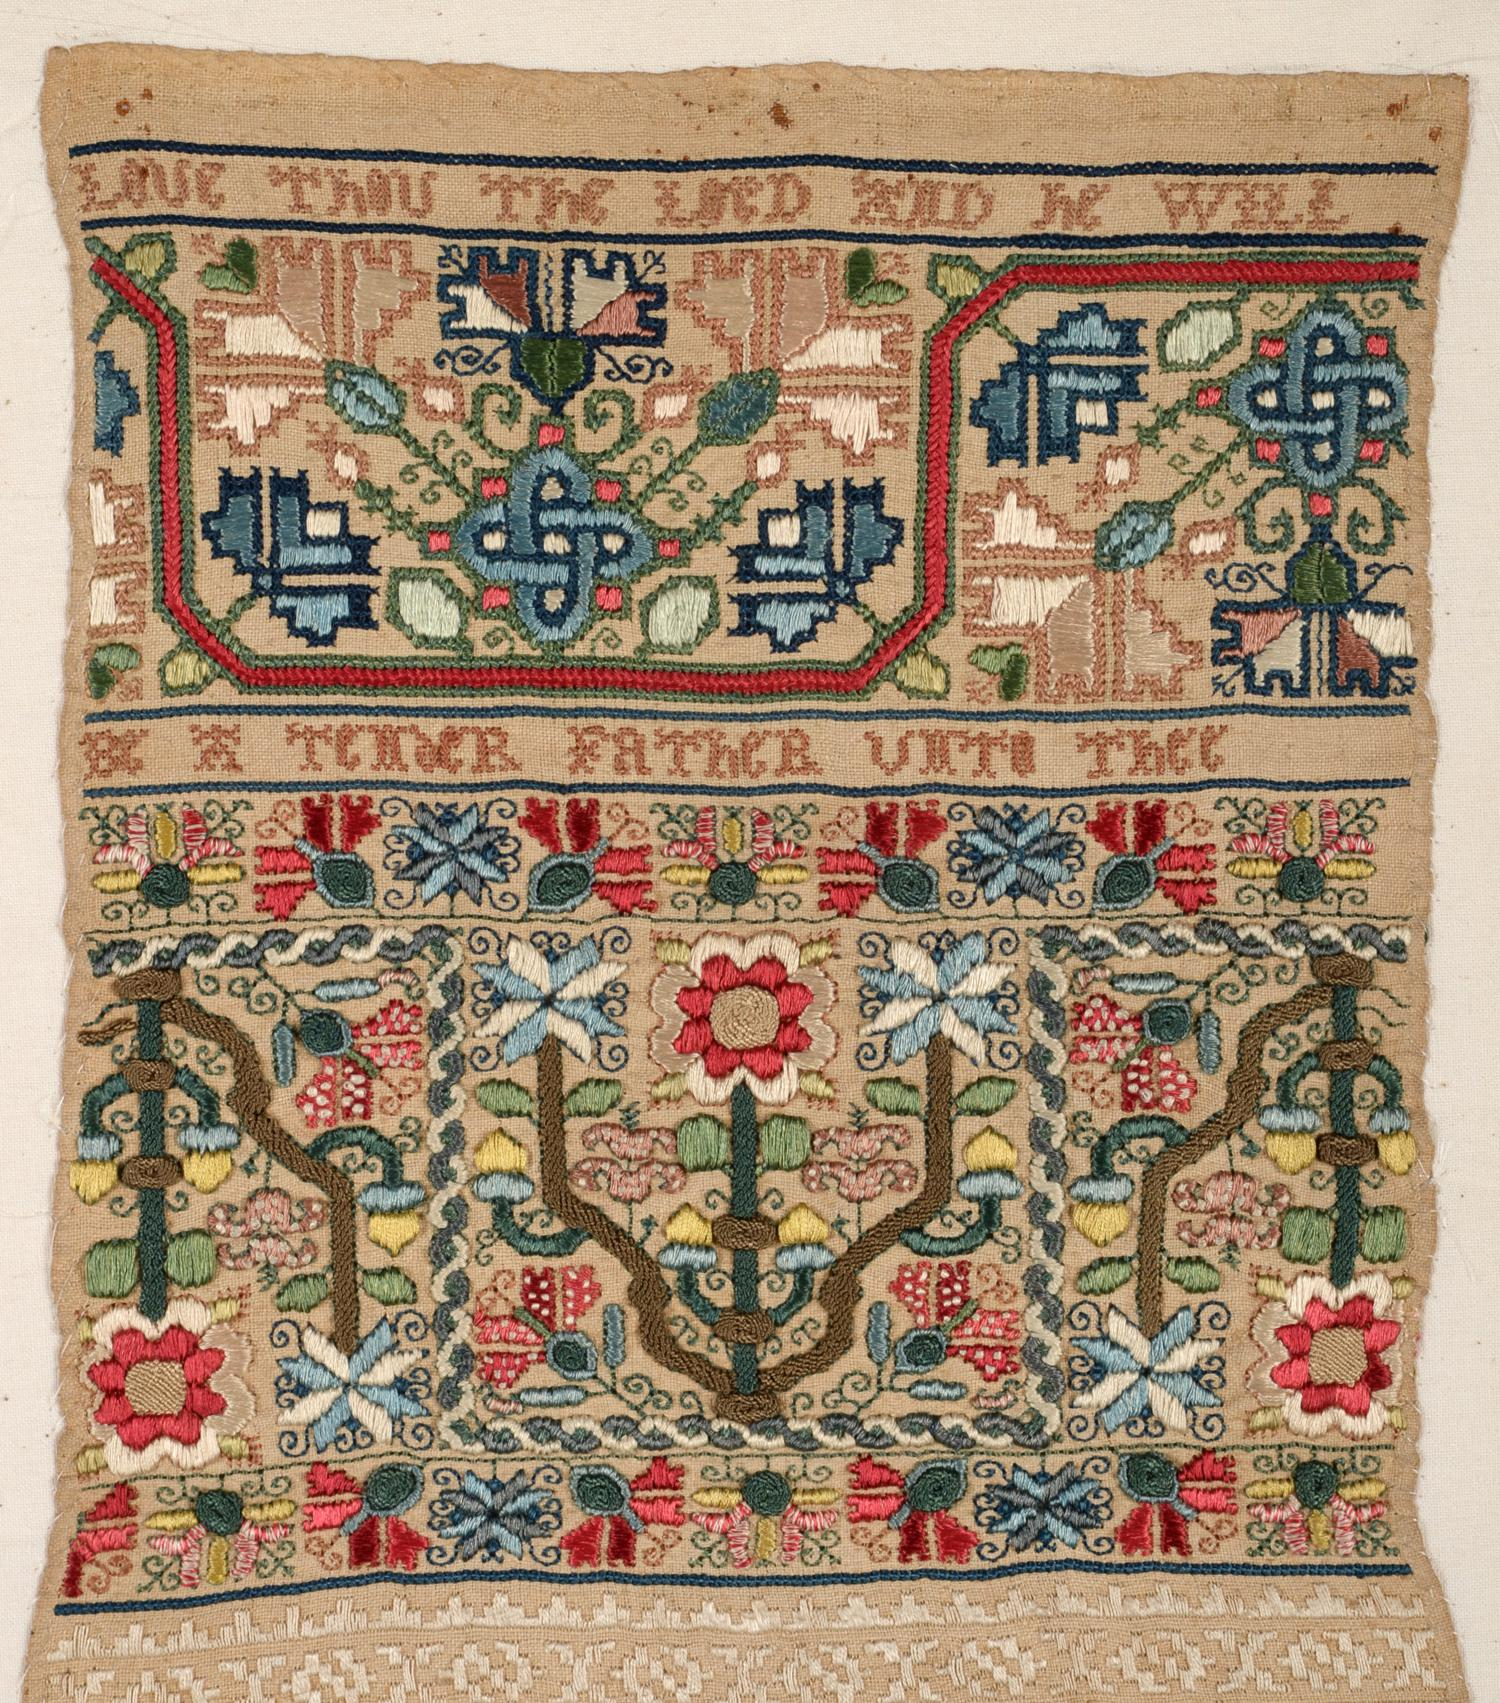 Lot 2210 - An Important Late 17th Century Quaker Band Sampler of Exceptional Quality, worked in coloured silk